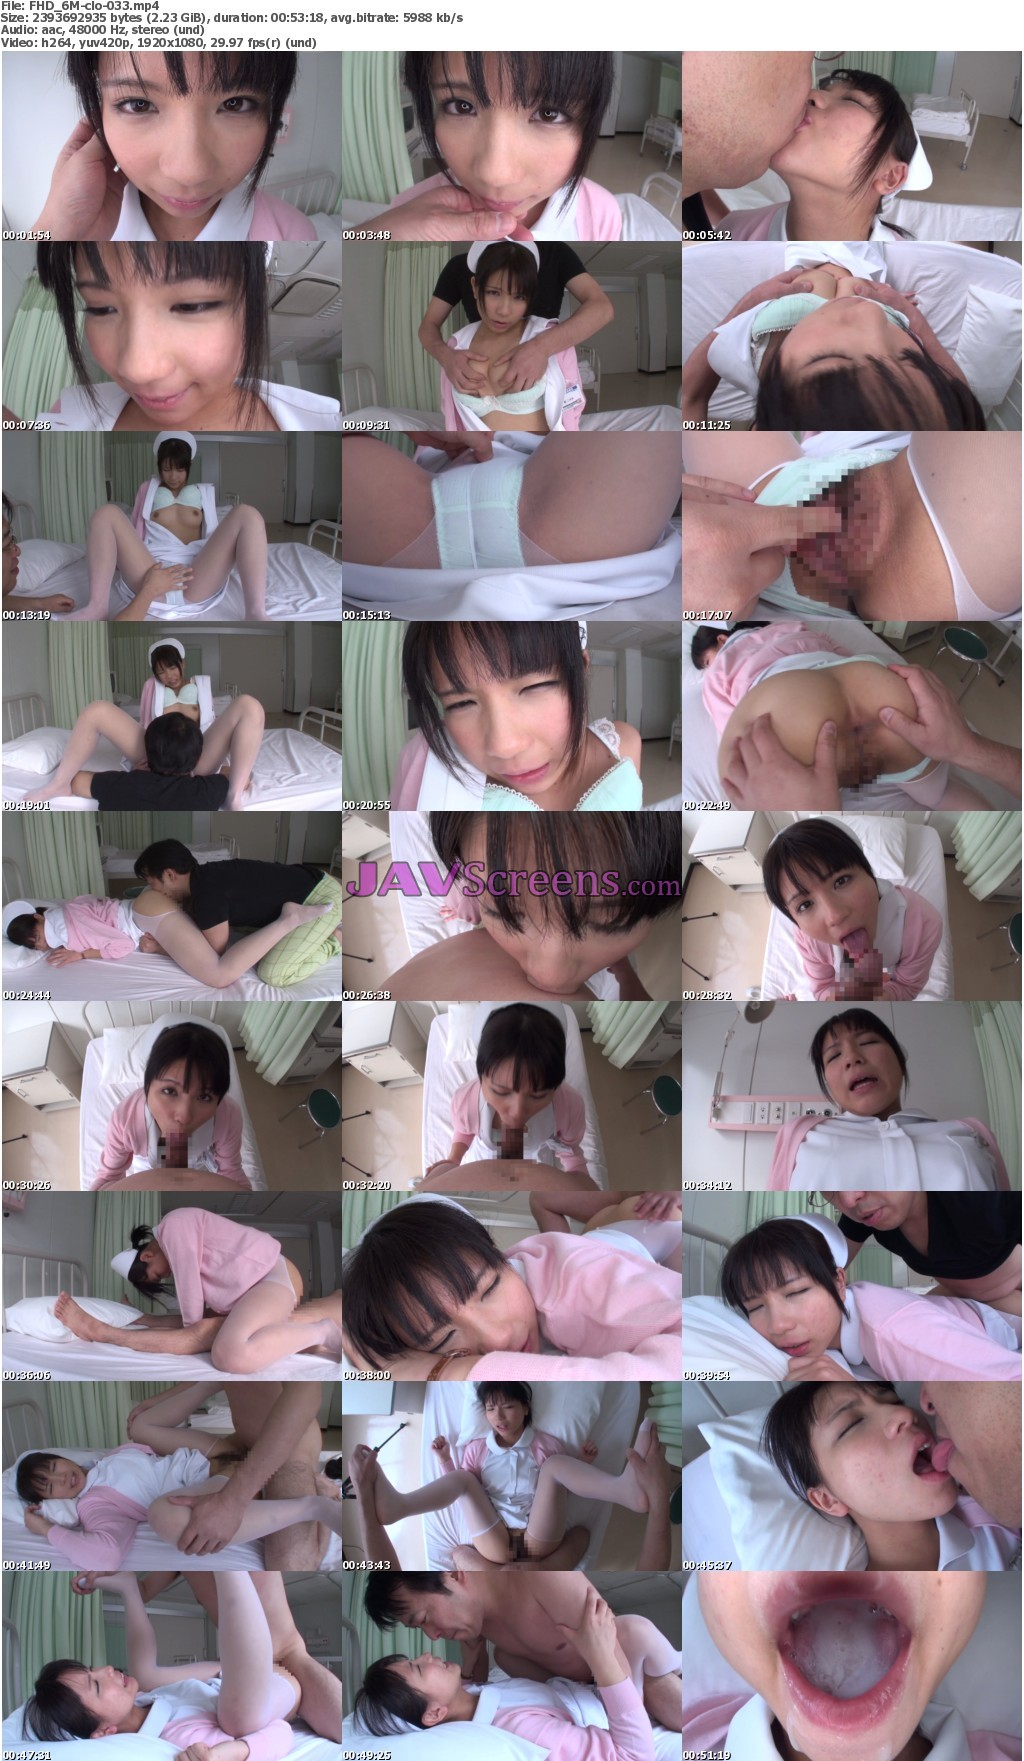 CLO-033.jpg - JAV Screenshot